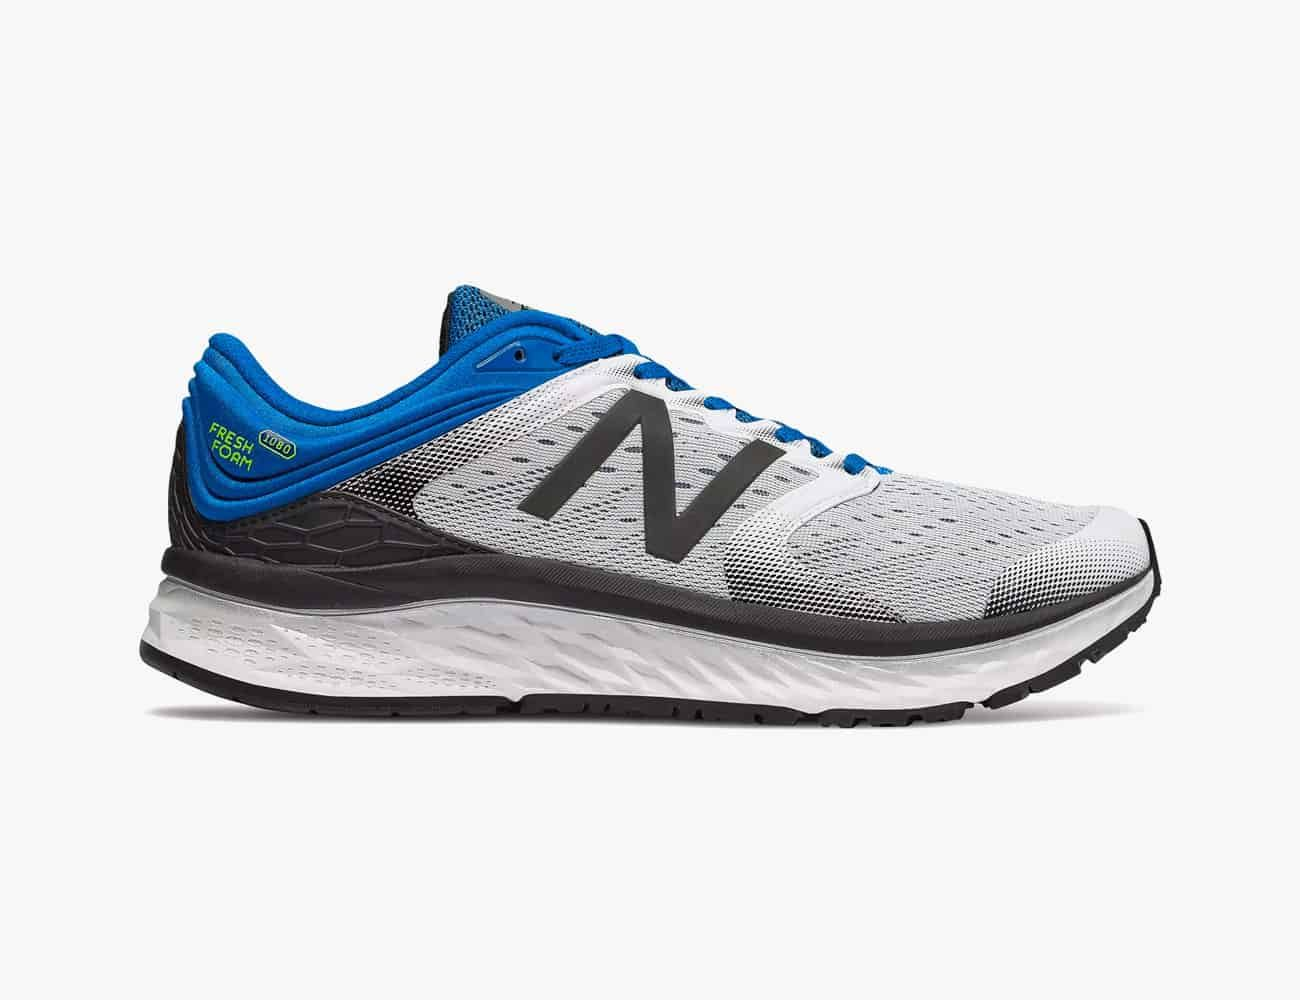 The 8 Best Shoes for Marathon Runners